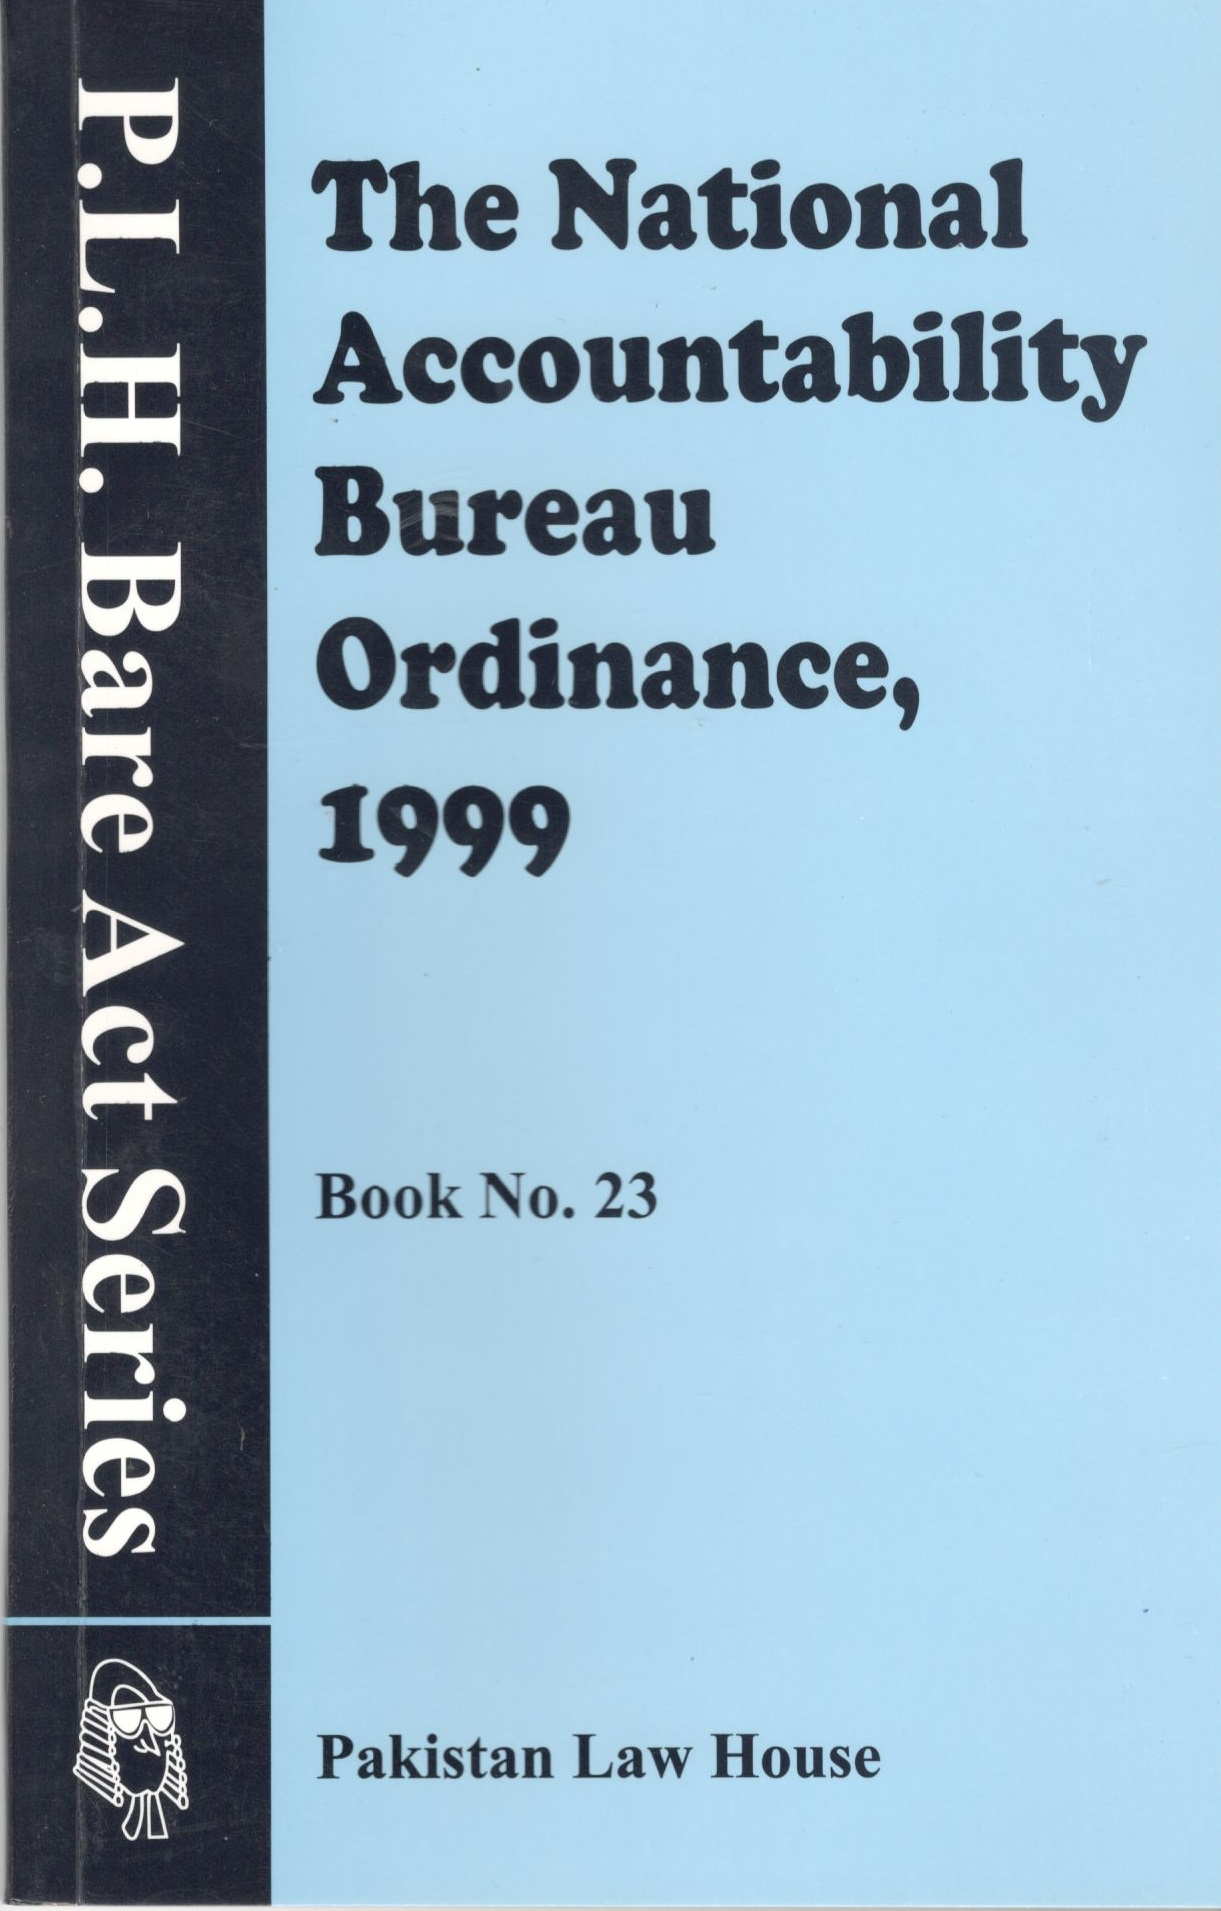 The National Accountability Bureau Ordinance, 1999